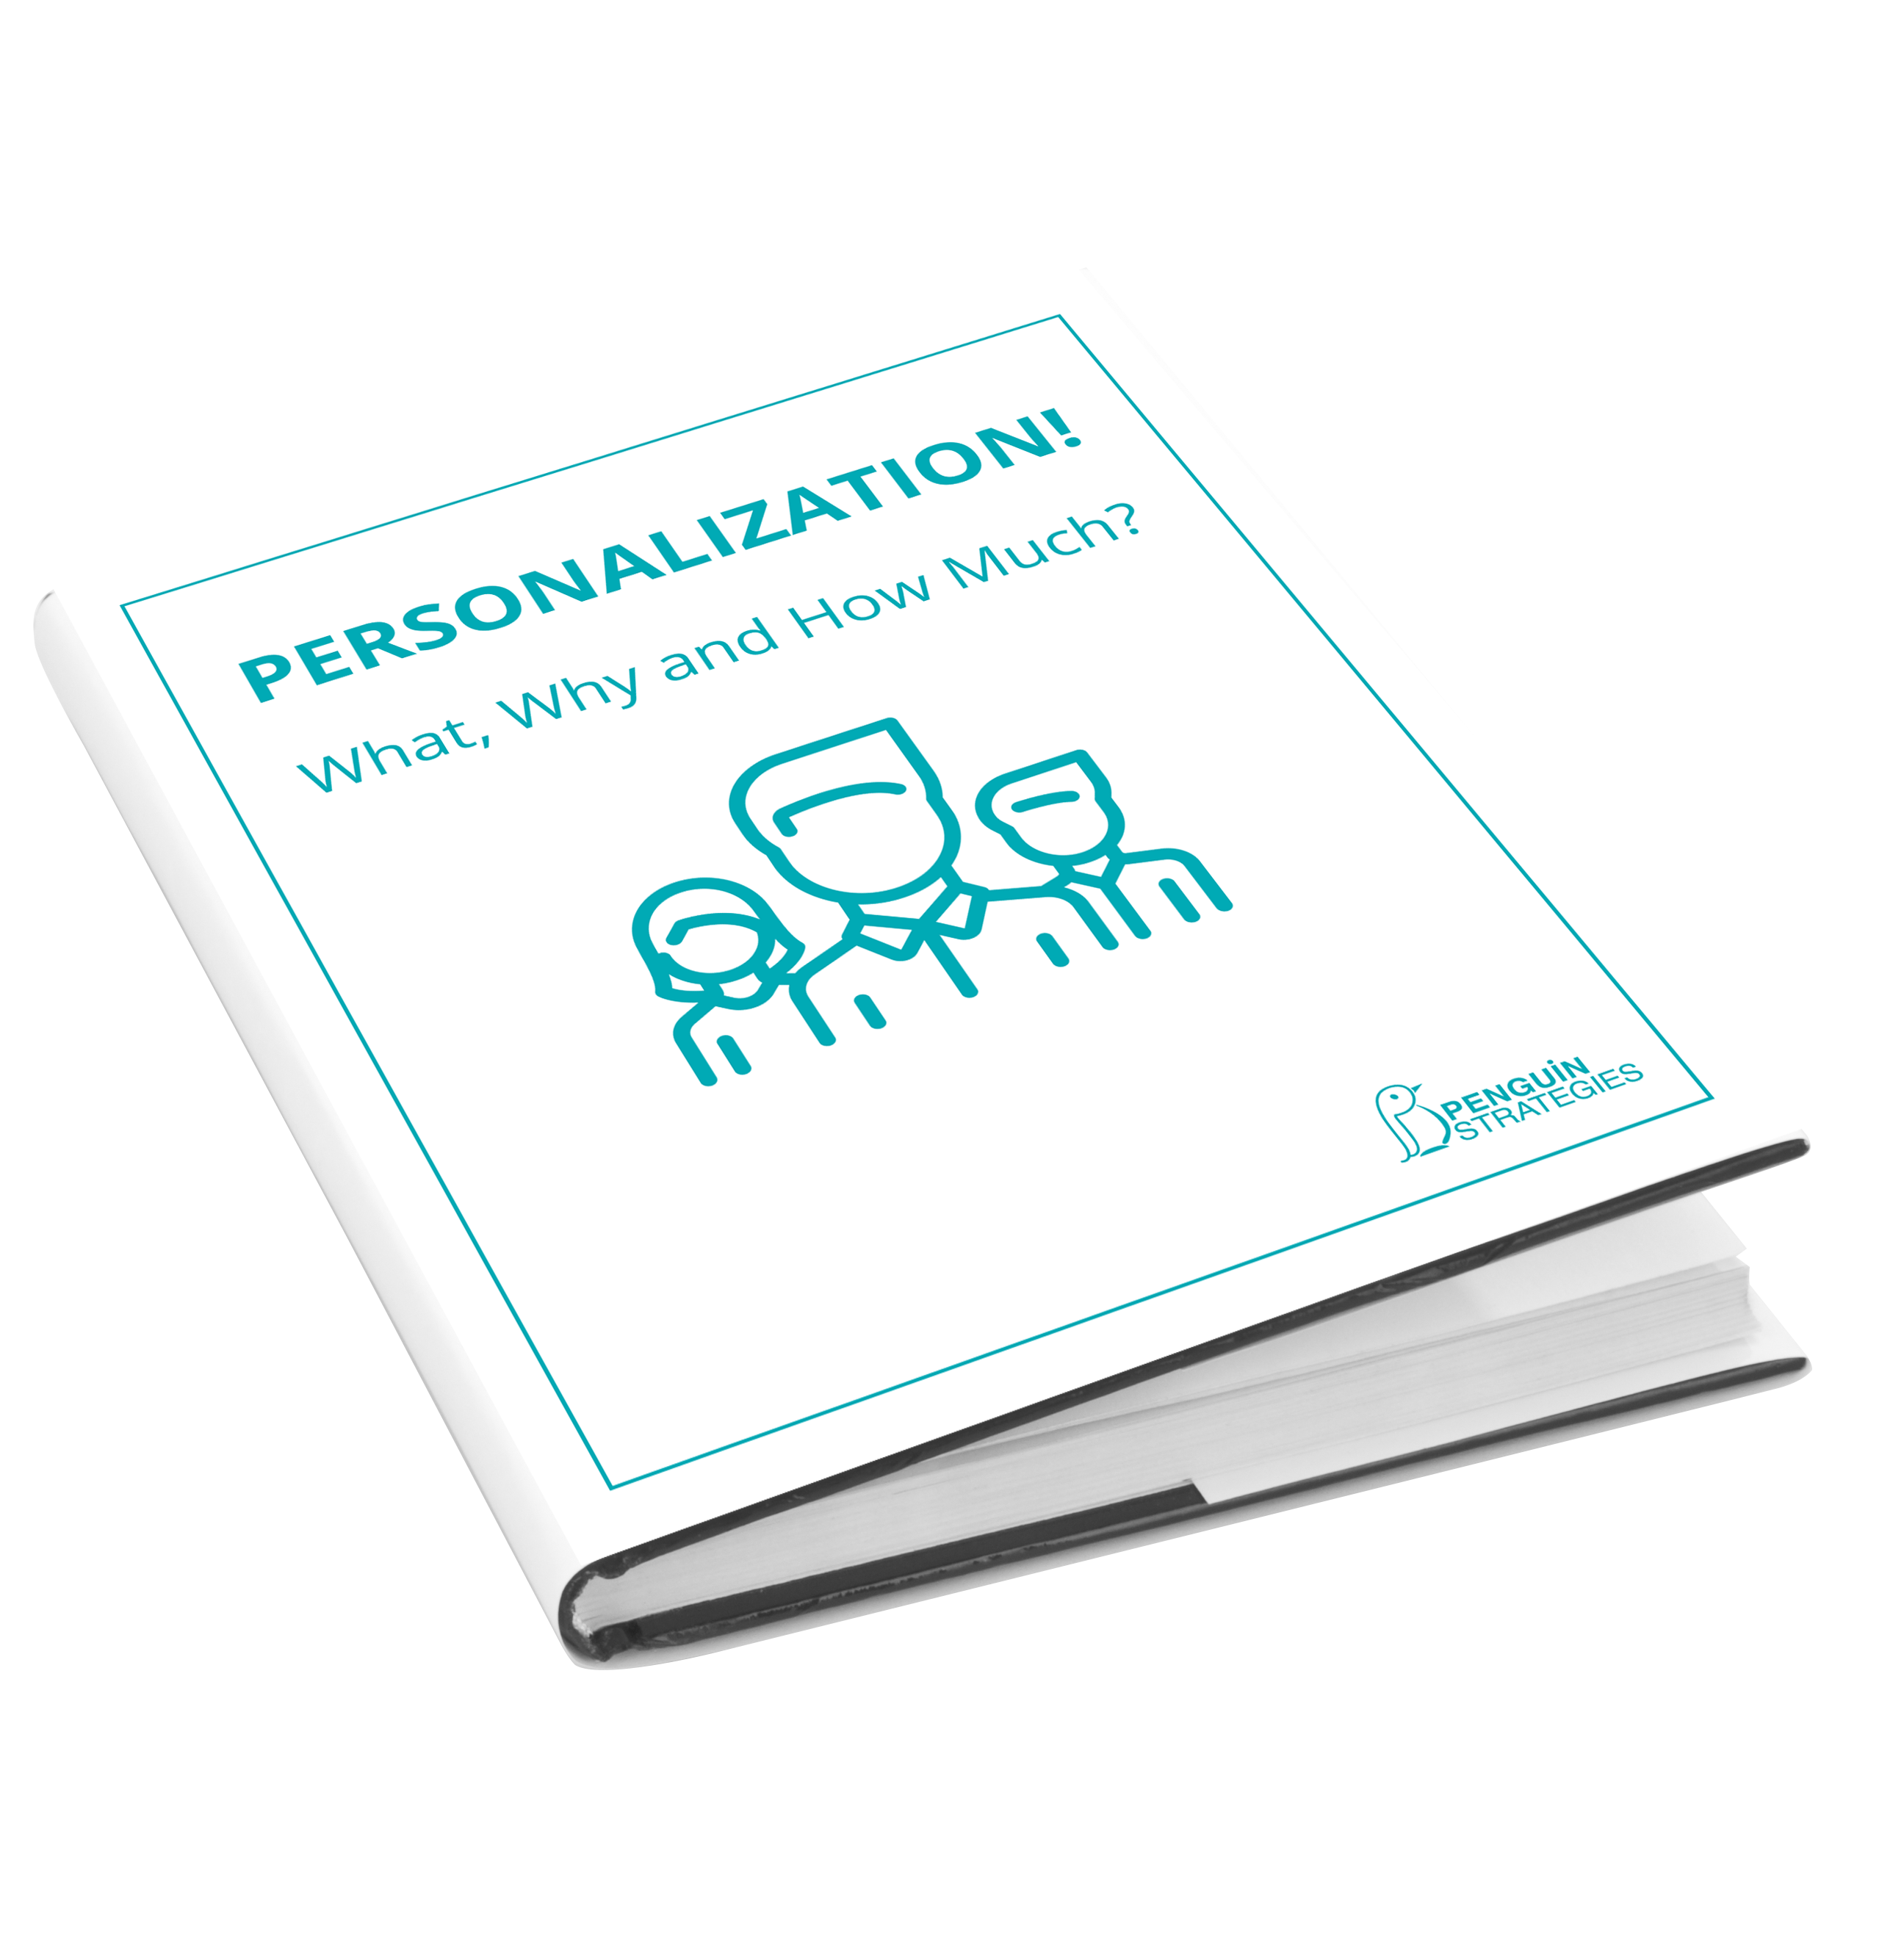 book web personalization white